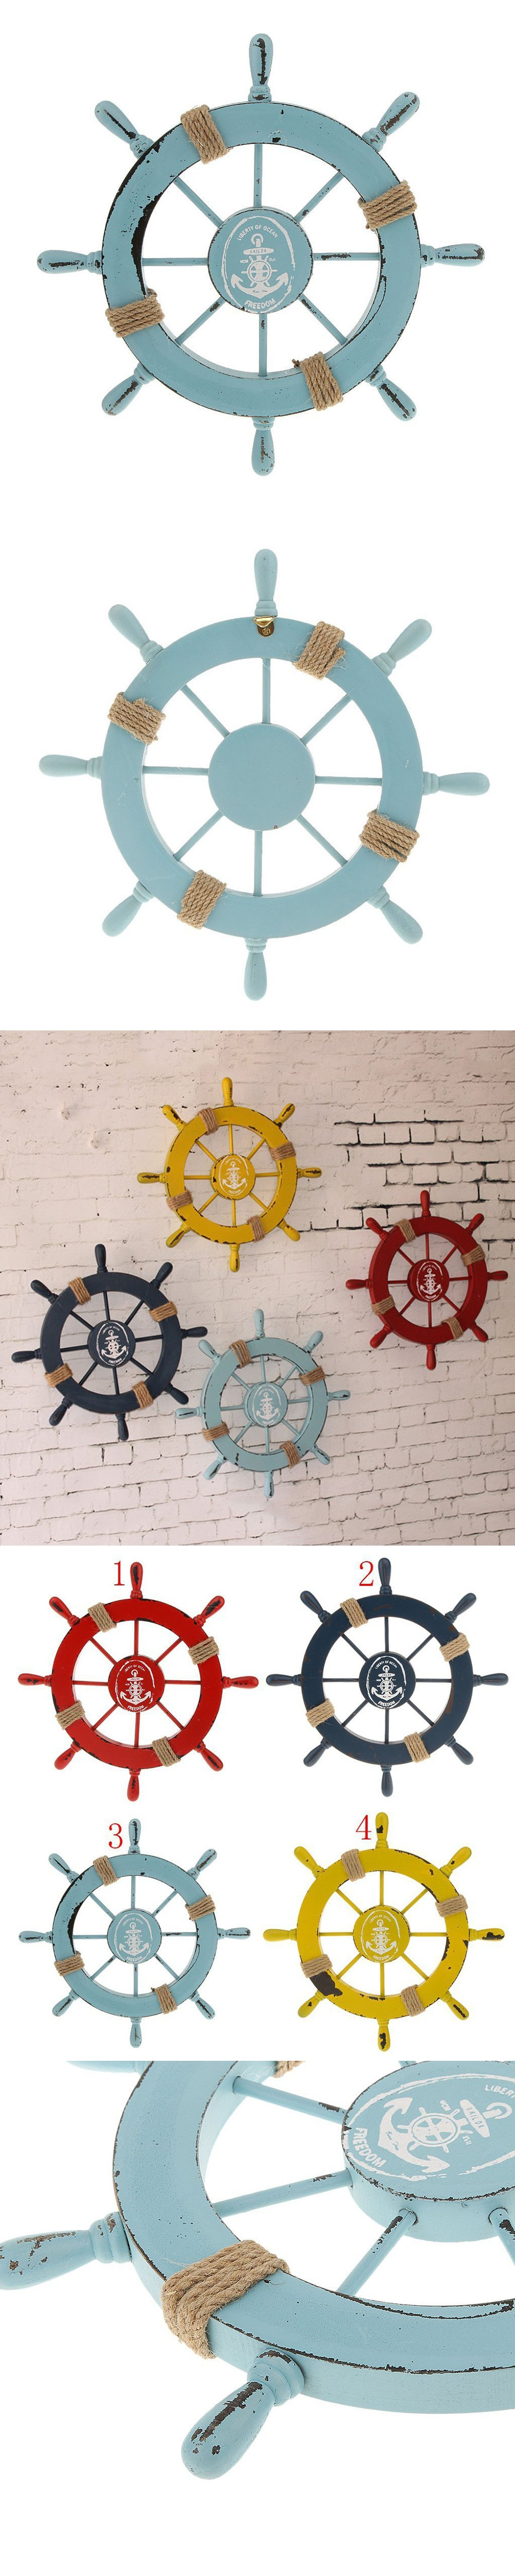 Mediterranean Nautical Wooden Boat Ship Wheel Helm Home Wall Party Decoration (Light Blue) $27.56